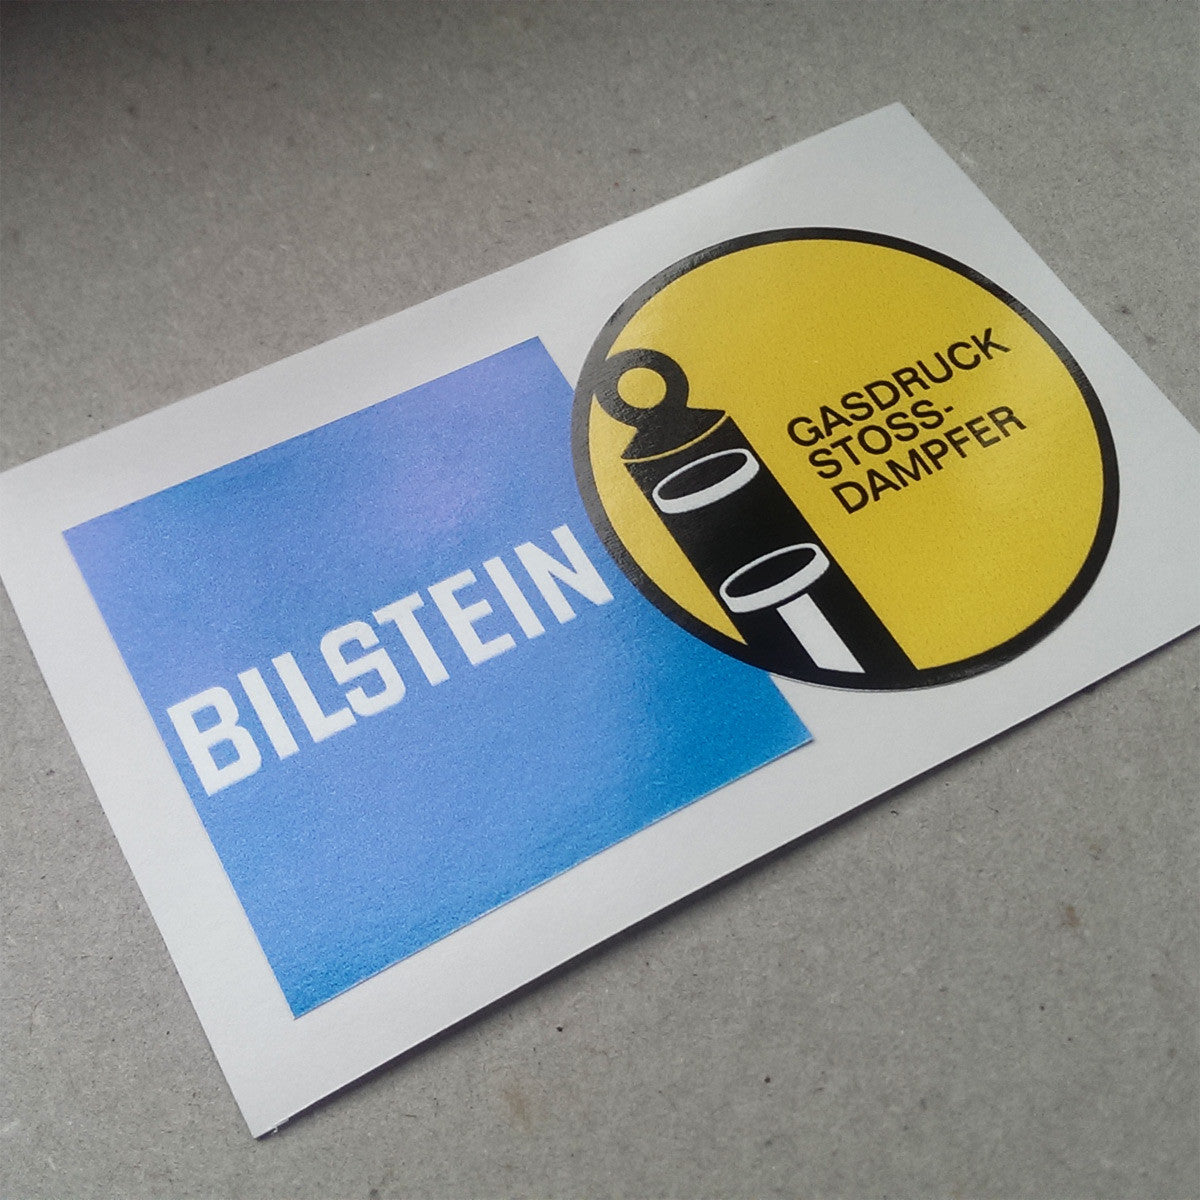 New vintage bilstein decal 2 aase sales porsche parts center